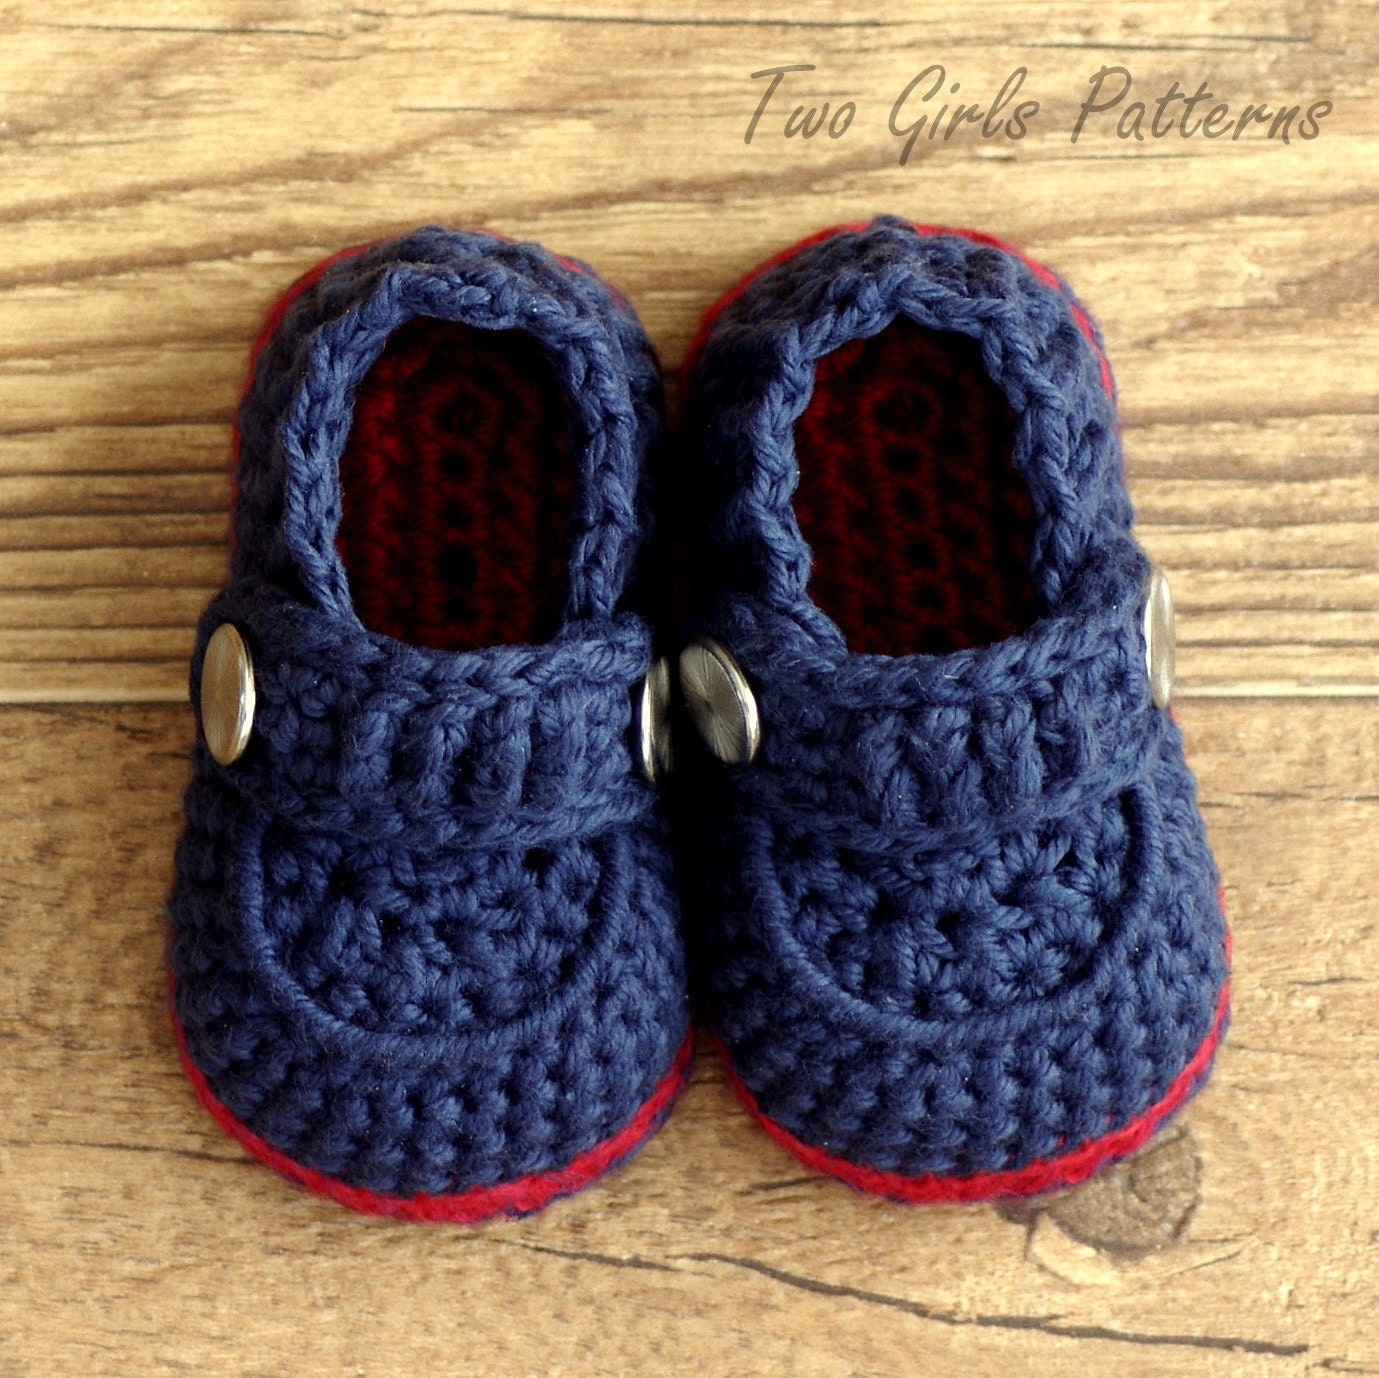 Crochet Stitches Baby Shoes : Crochet patterns - Baby Boy Boot - The Sailor - Pattern number 203 ...